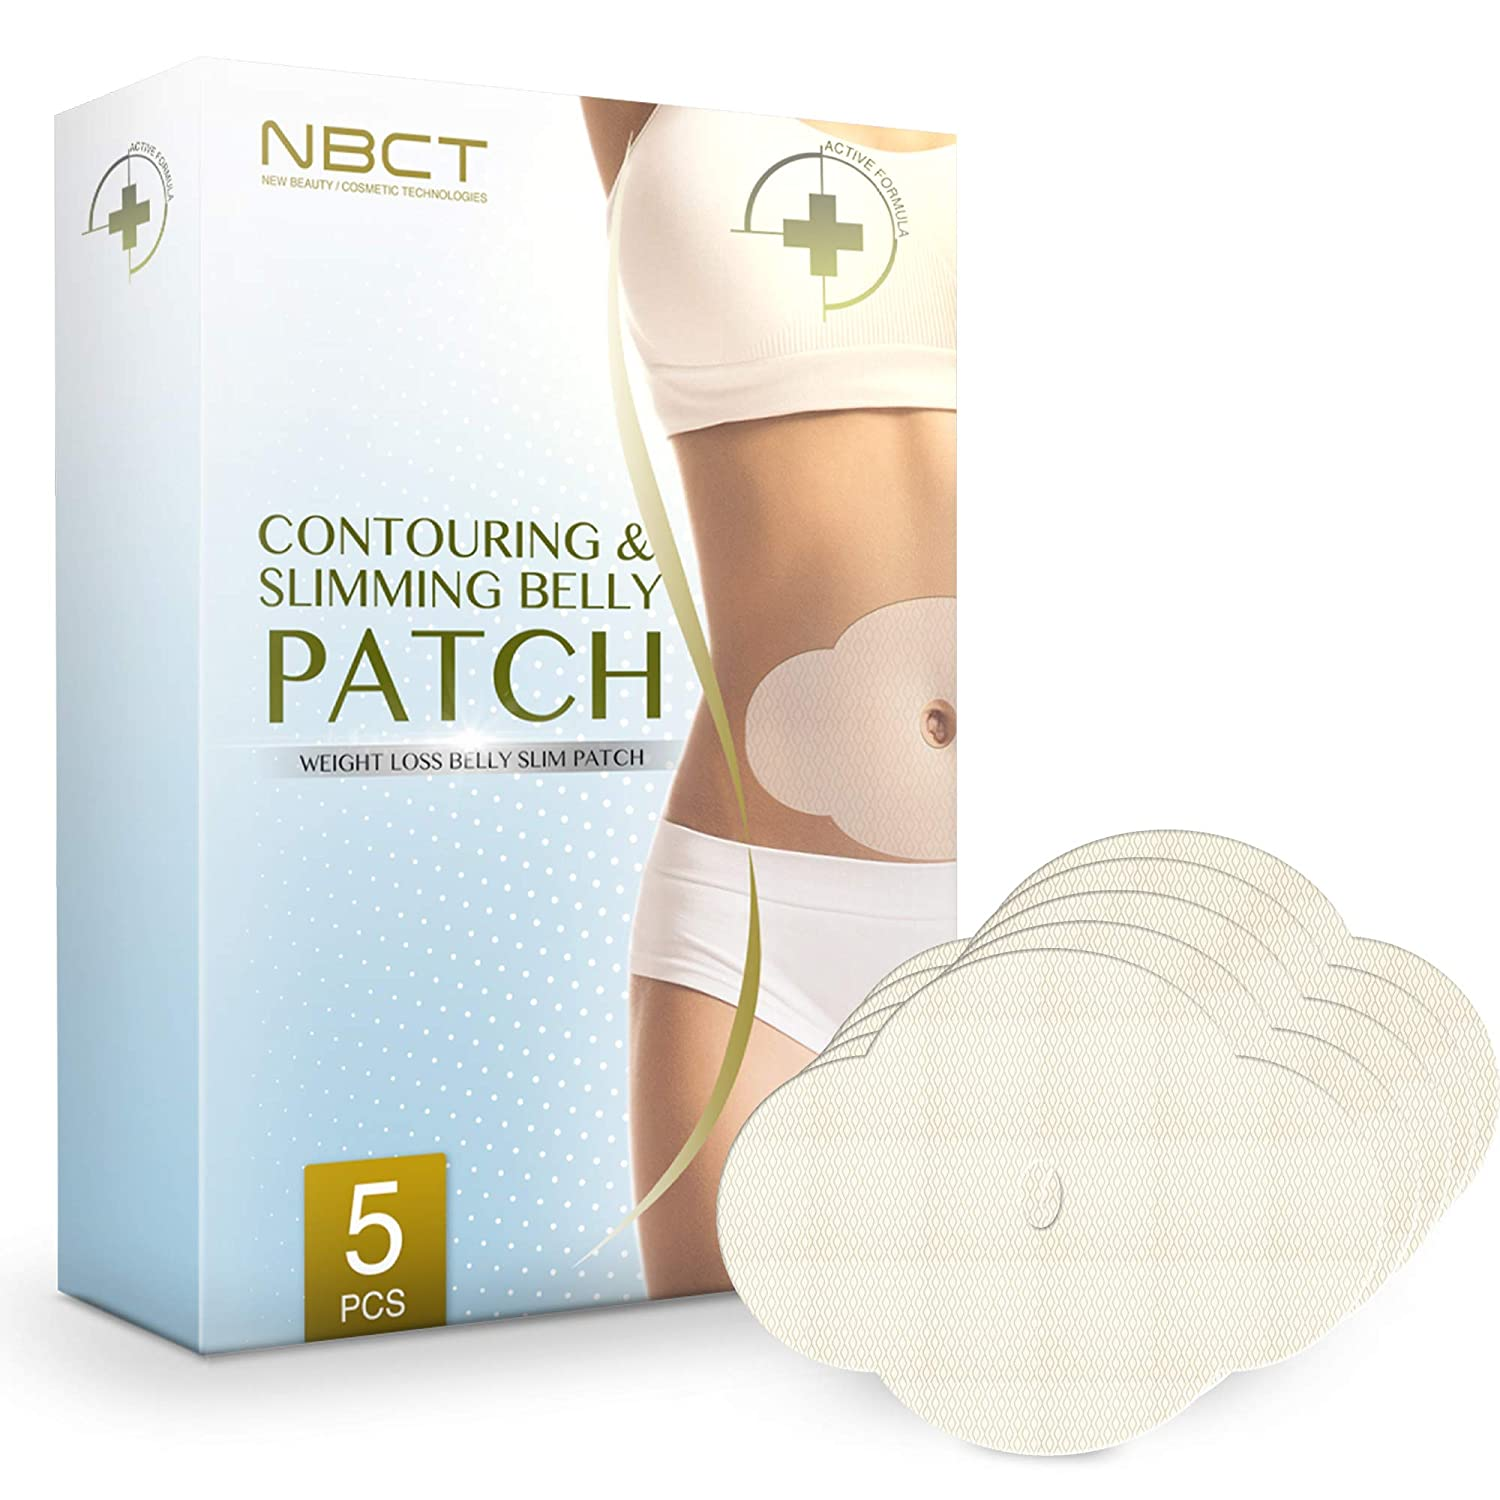 NBCT Belly Contouring Patch, Ultimate Body Wrap Lipo Applicator, All Natural, Works for Inch Loss Firming Contouring Shaping - 5 Body Wraps